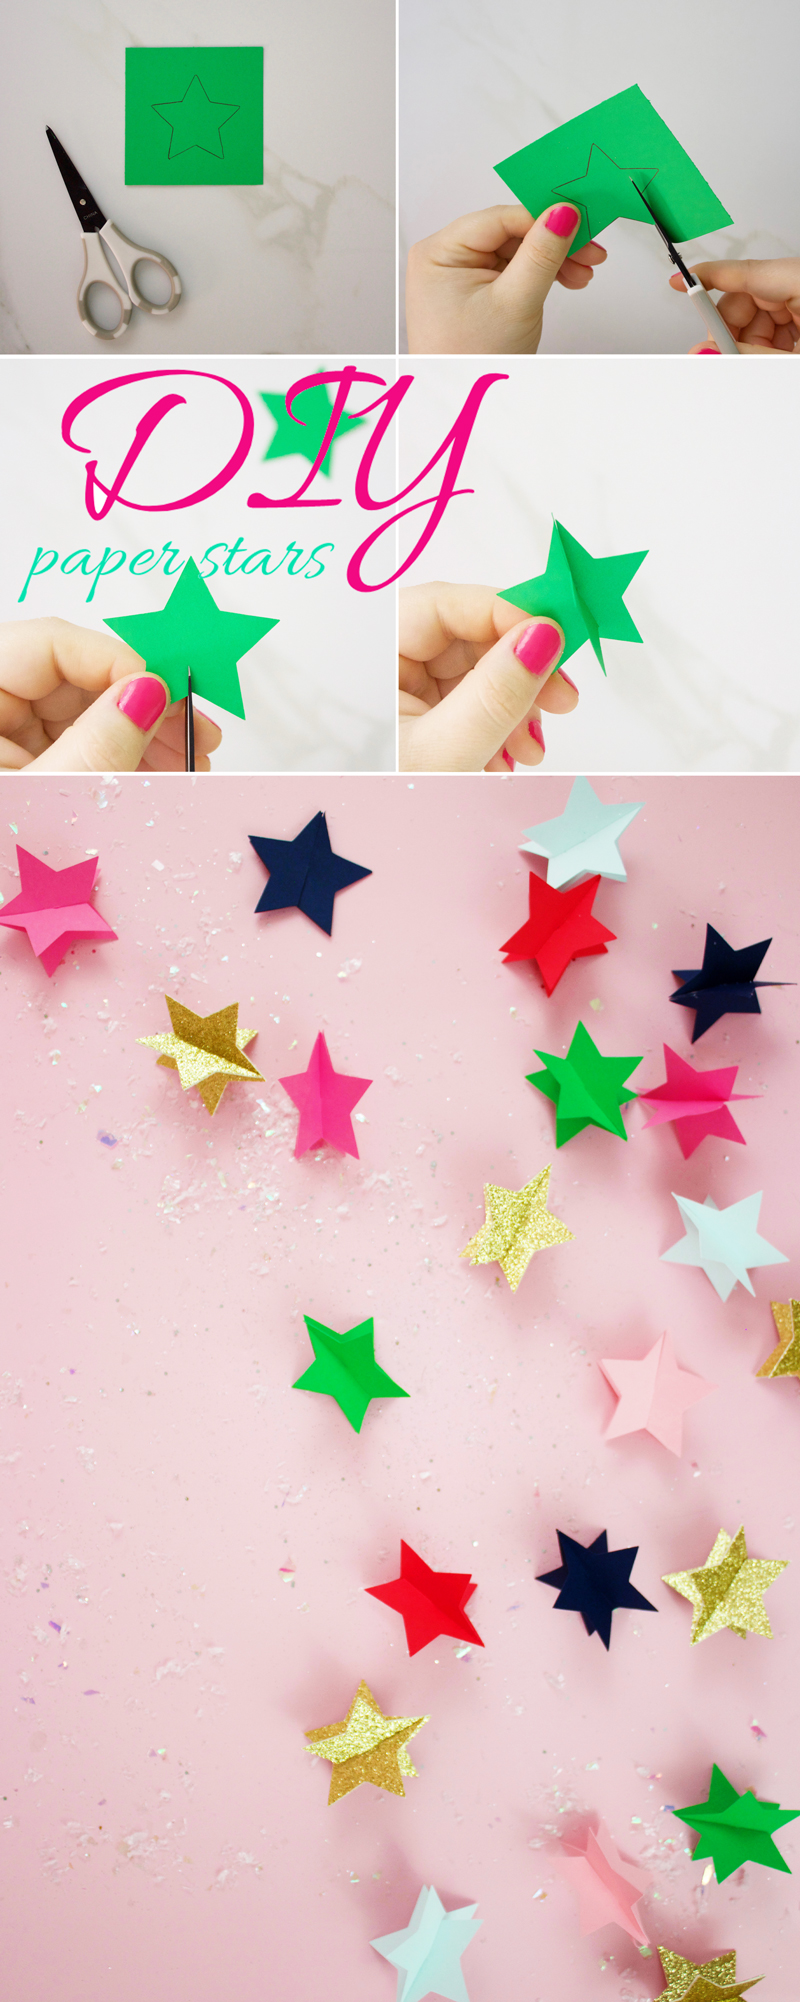 How To make A Christmas Star With Paper Step by Step instructions